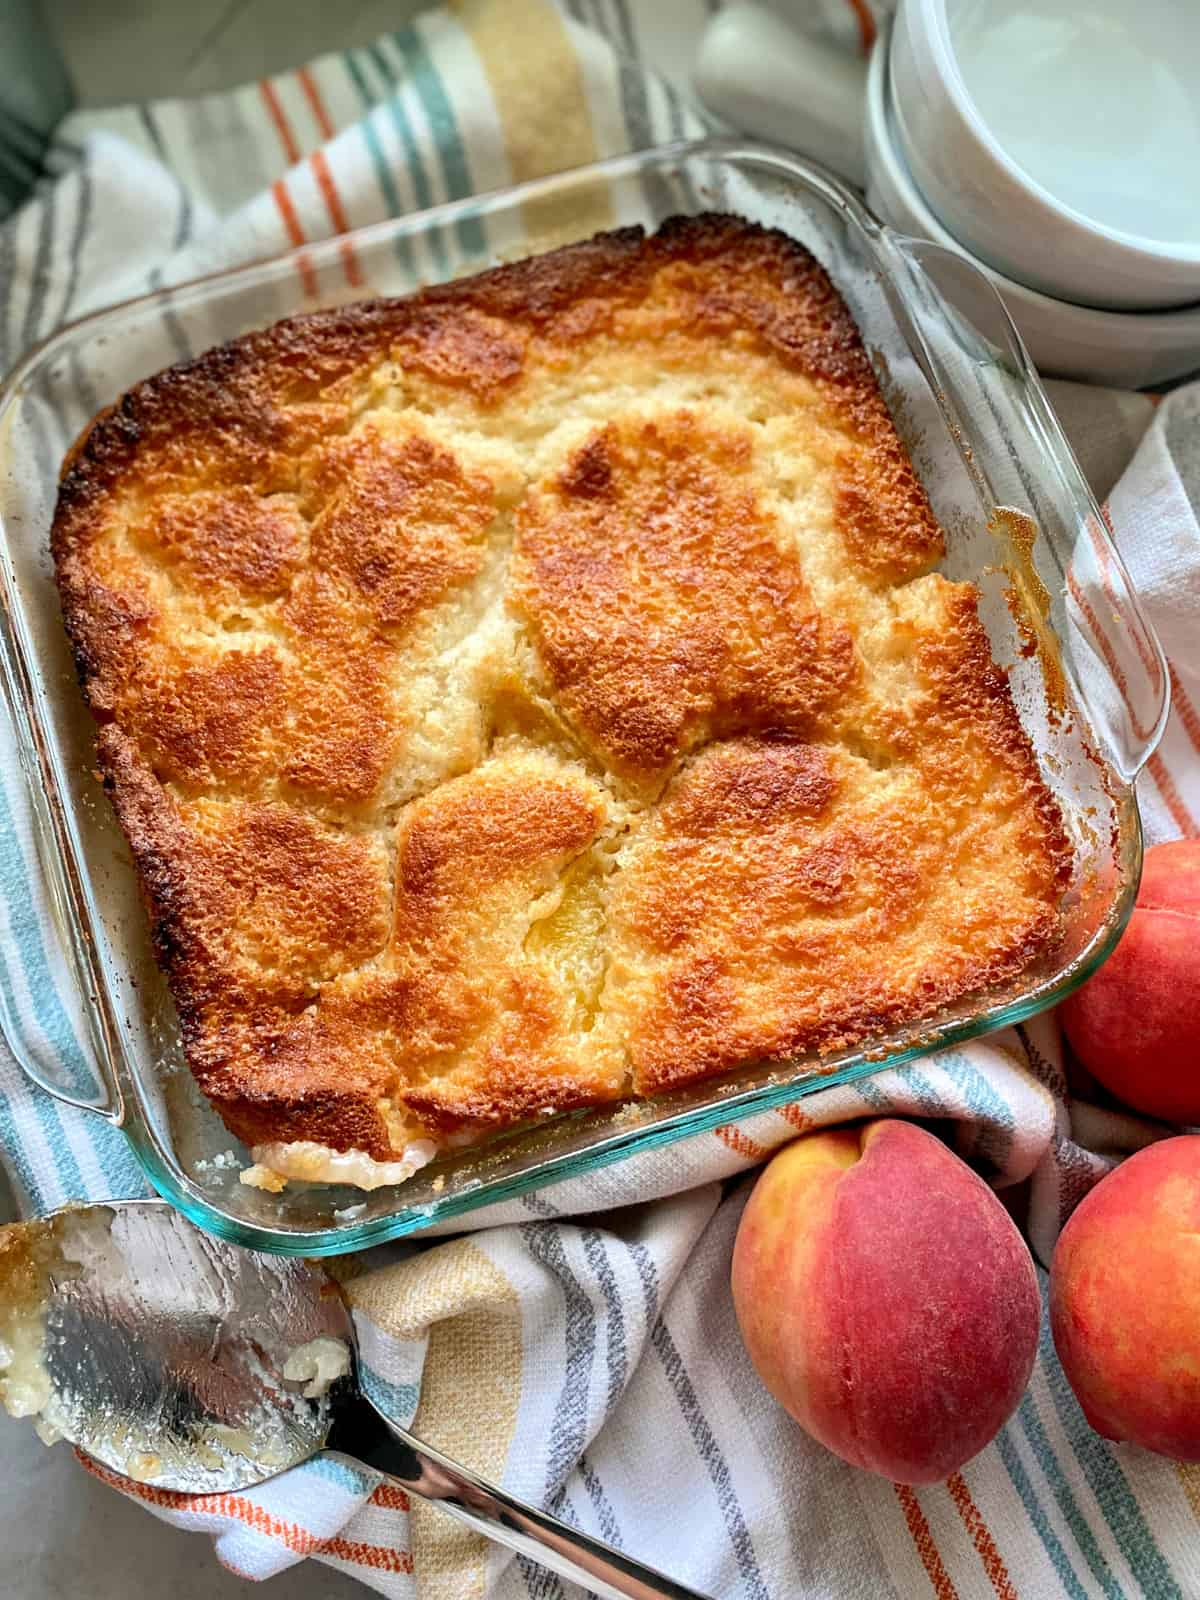 Top view of a square glass baking dish filled with peach cobbler with a spoon and fresh peaches next to it.